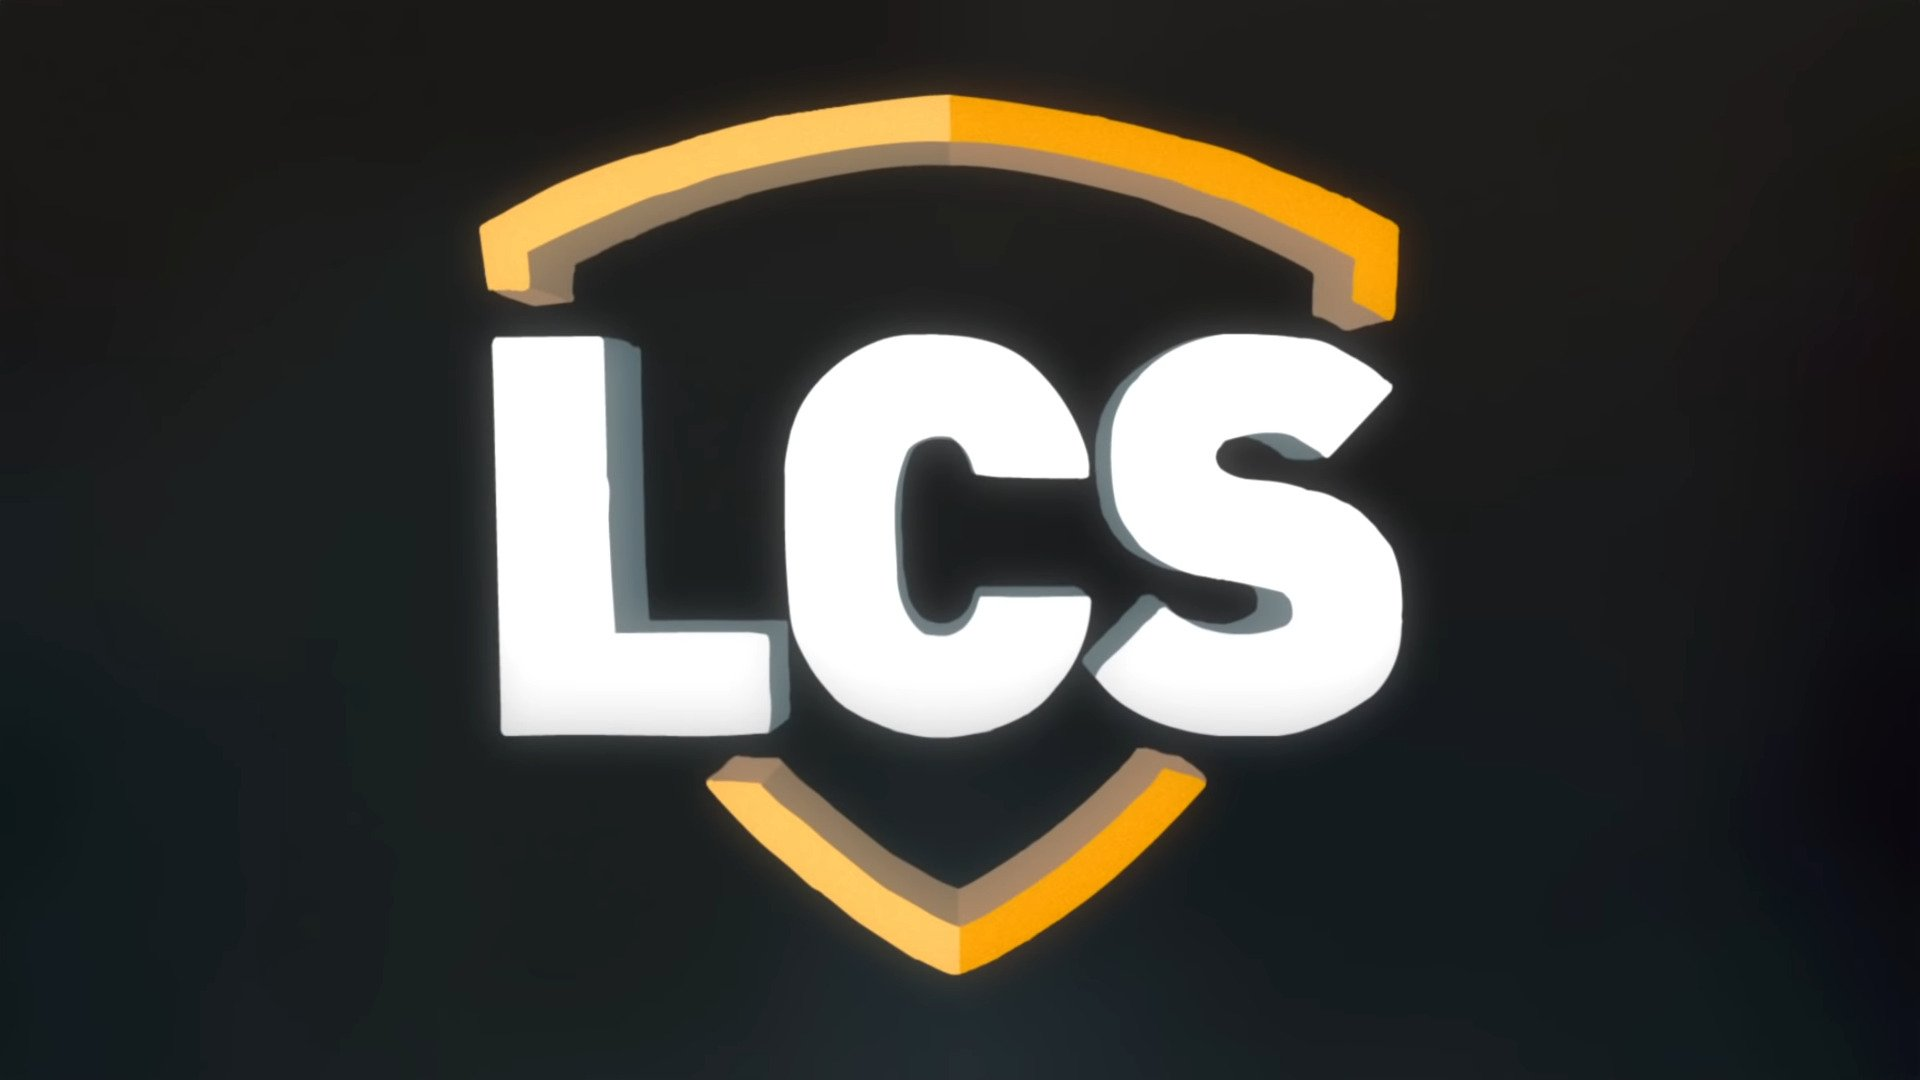 LCS – League Championship Series Added Honda As First-Ever In-Game Banner Partner For Playoffs